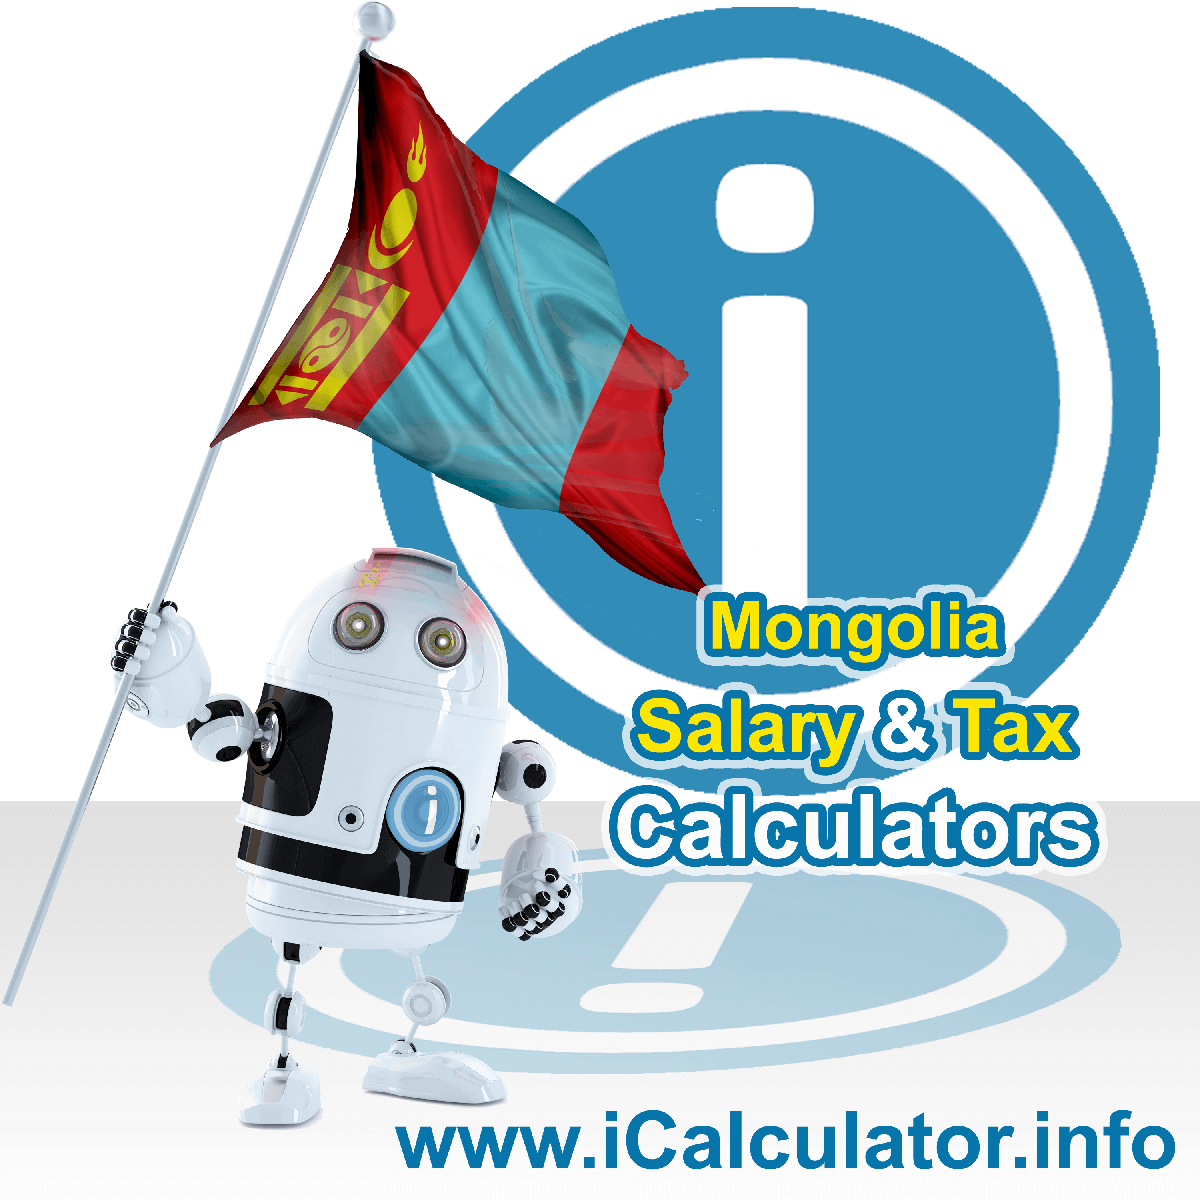 Mongolia Tax Calculator. This image shows the Mongolia flag and information relating to the tax formula for the Mongolia Salary Calculator